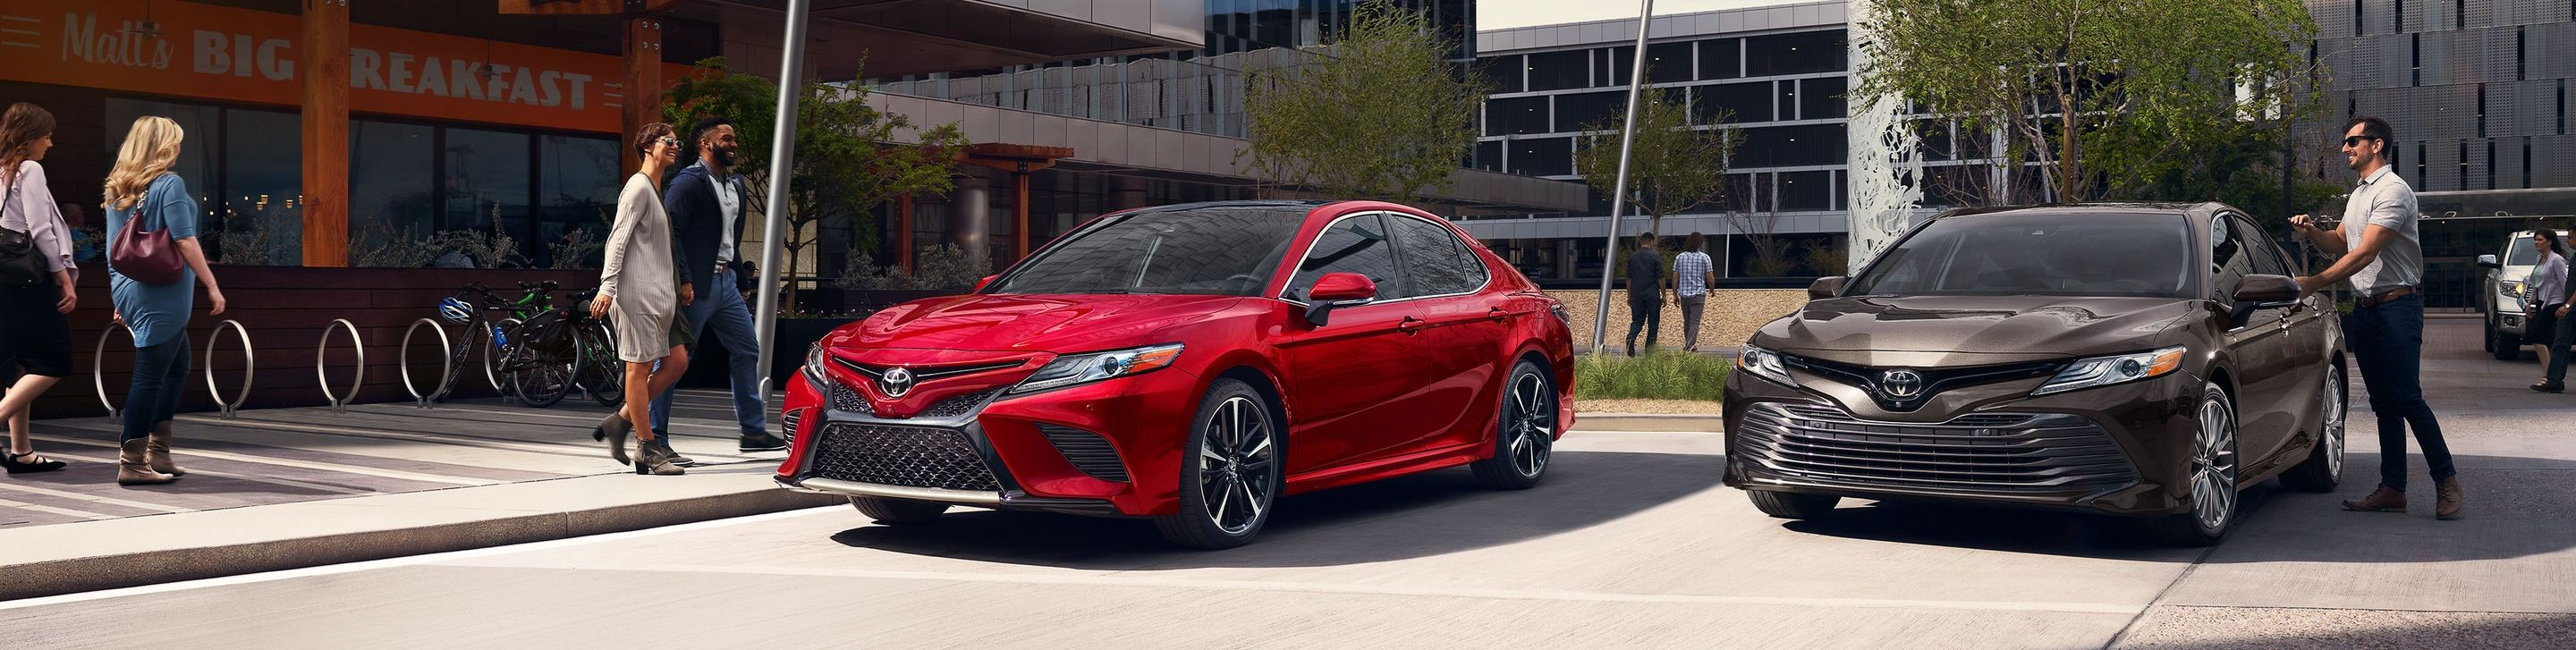 2019 Toyota Camry for Sale near North Plainfield, NJ